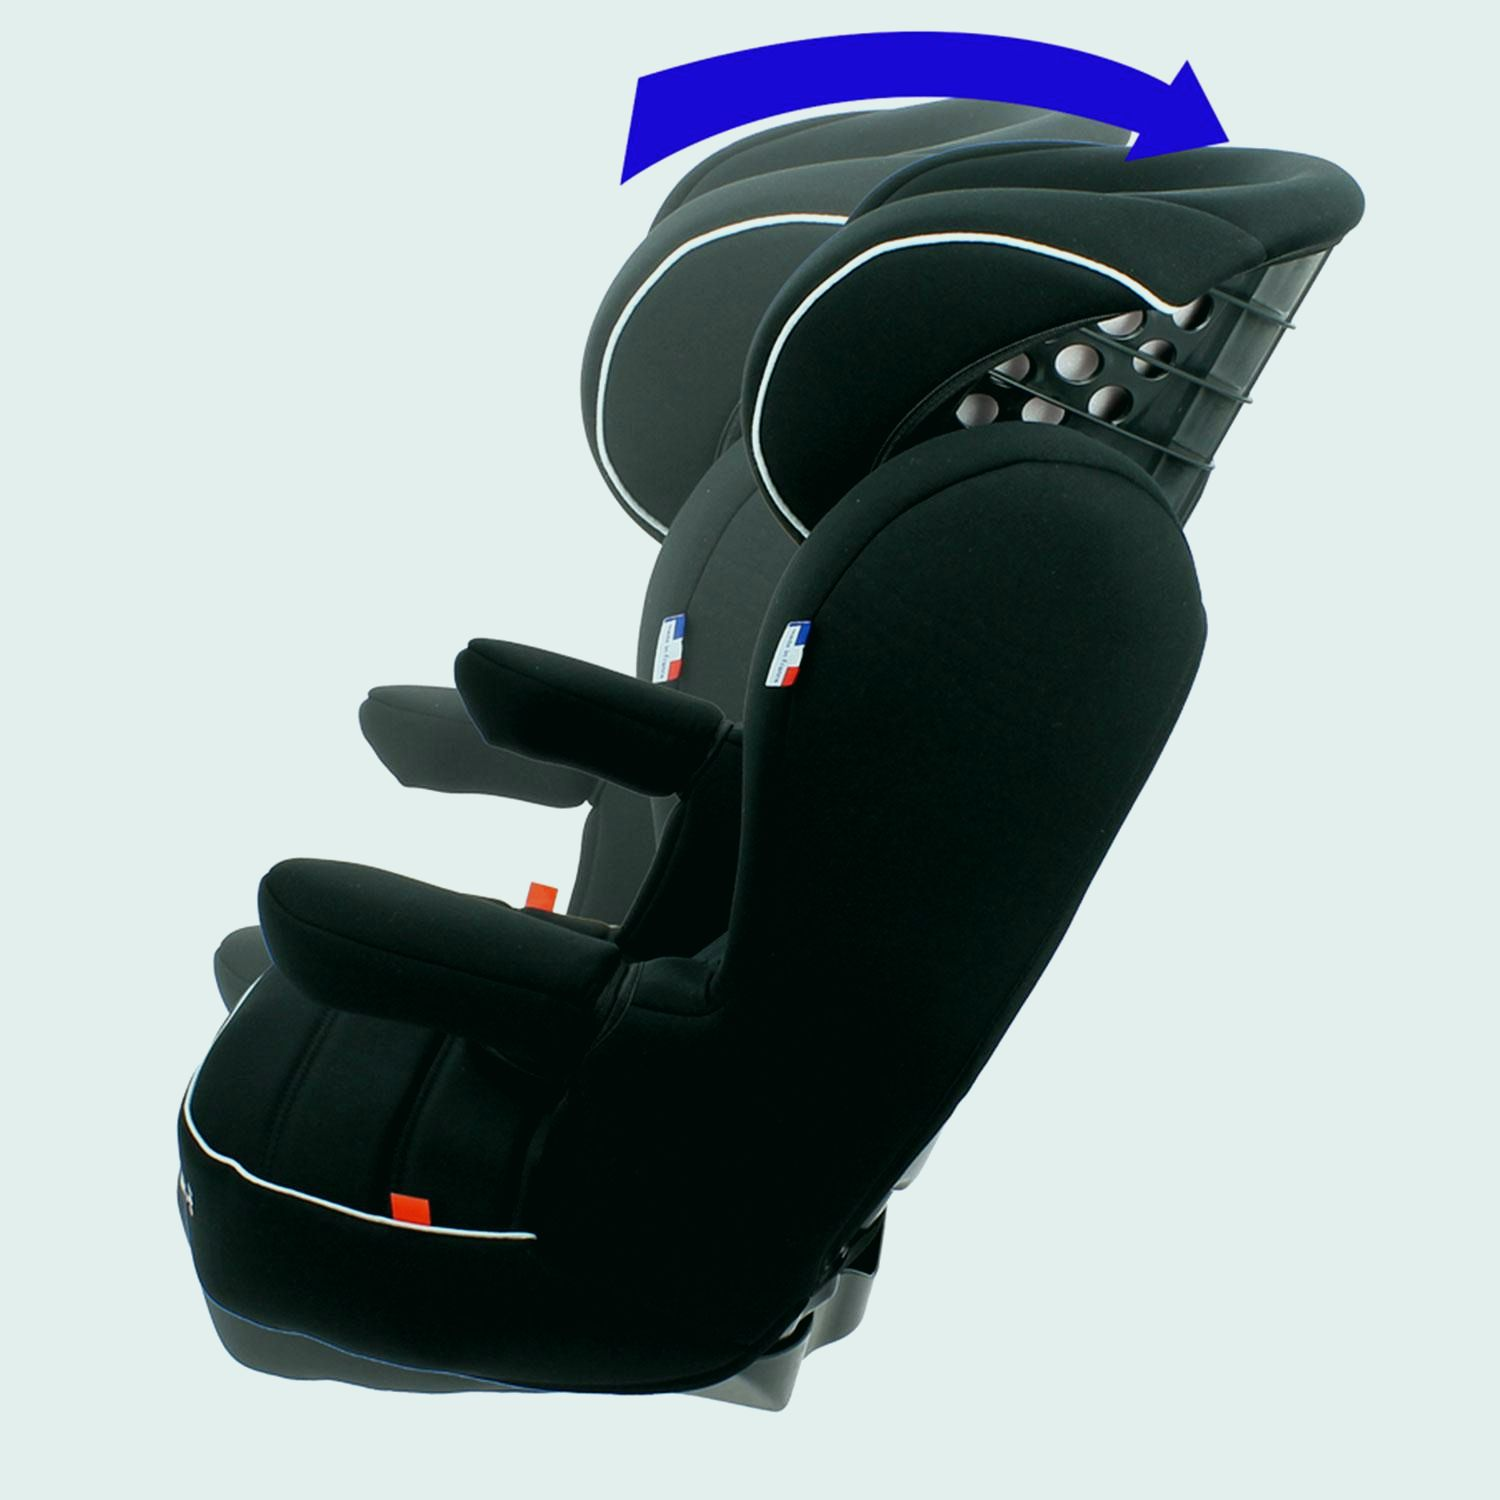 siege auto isofix 1 2 3 inclinable